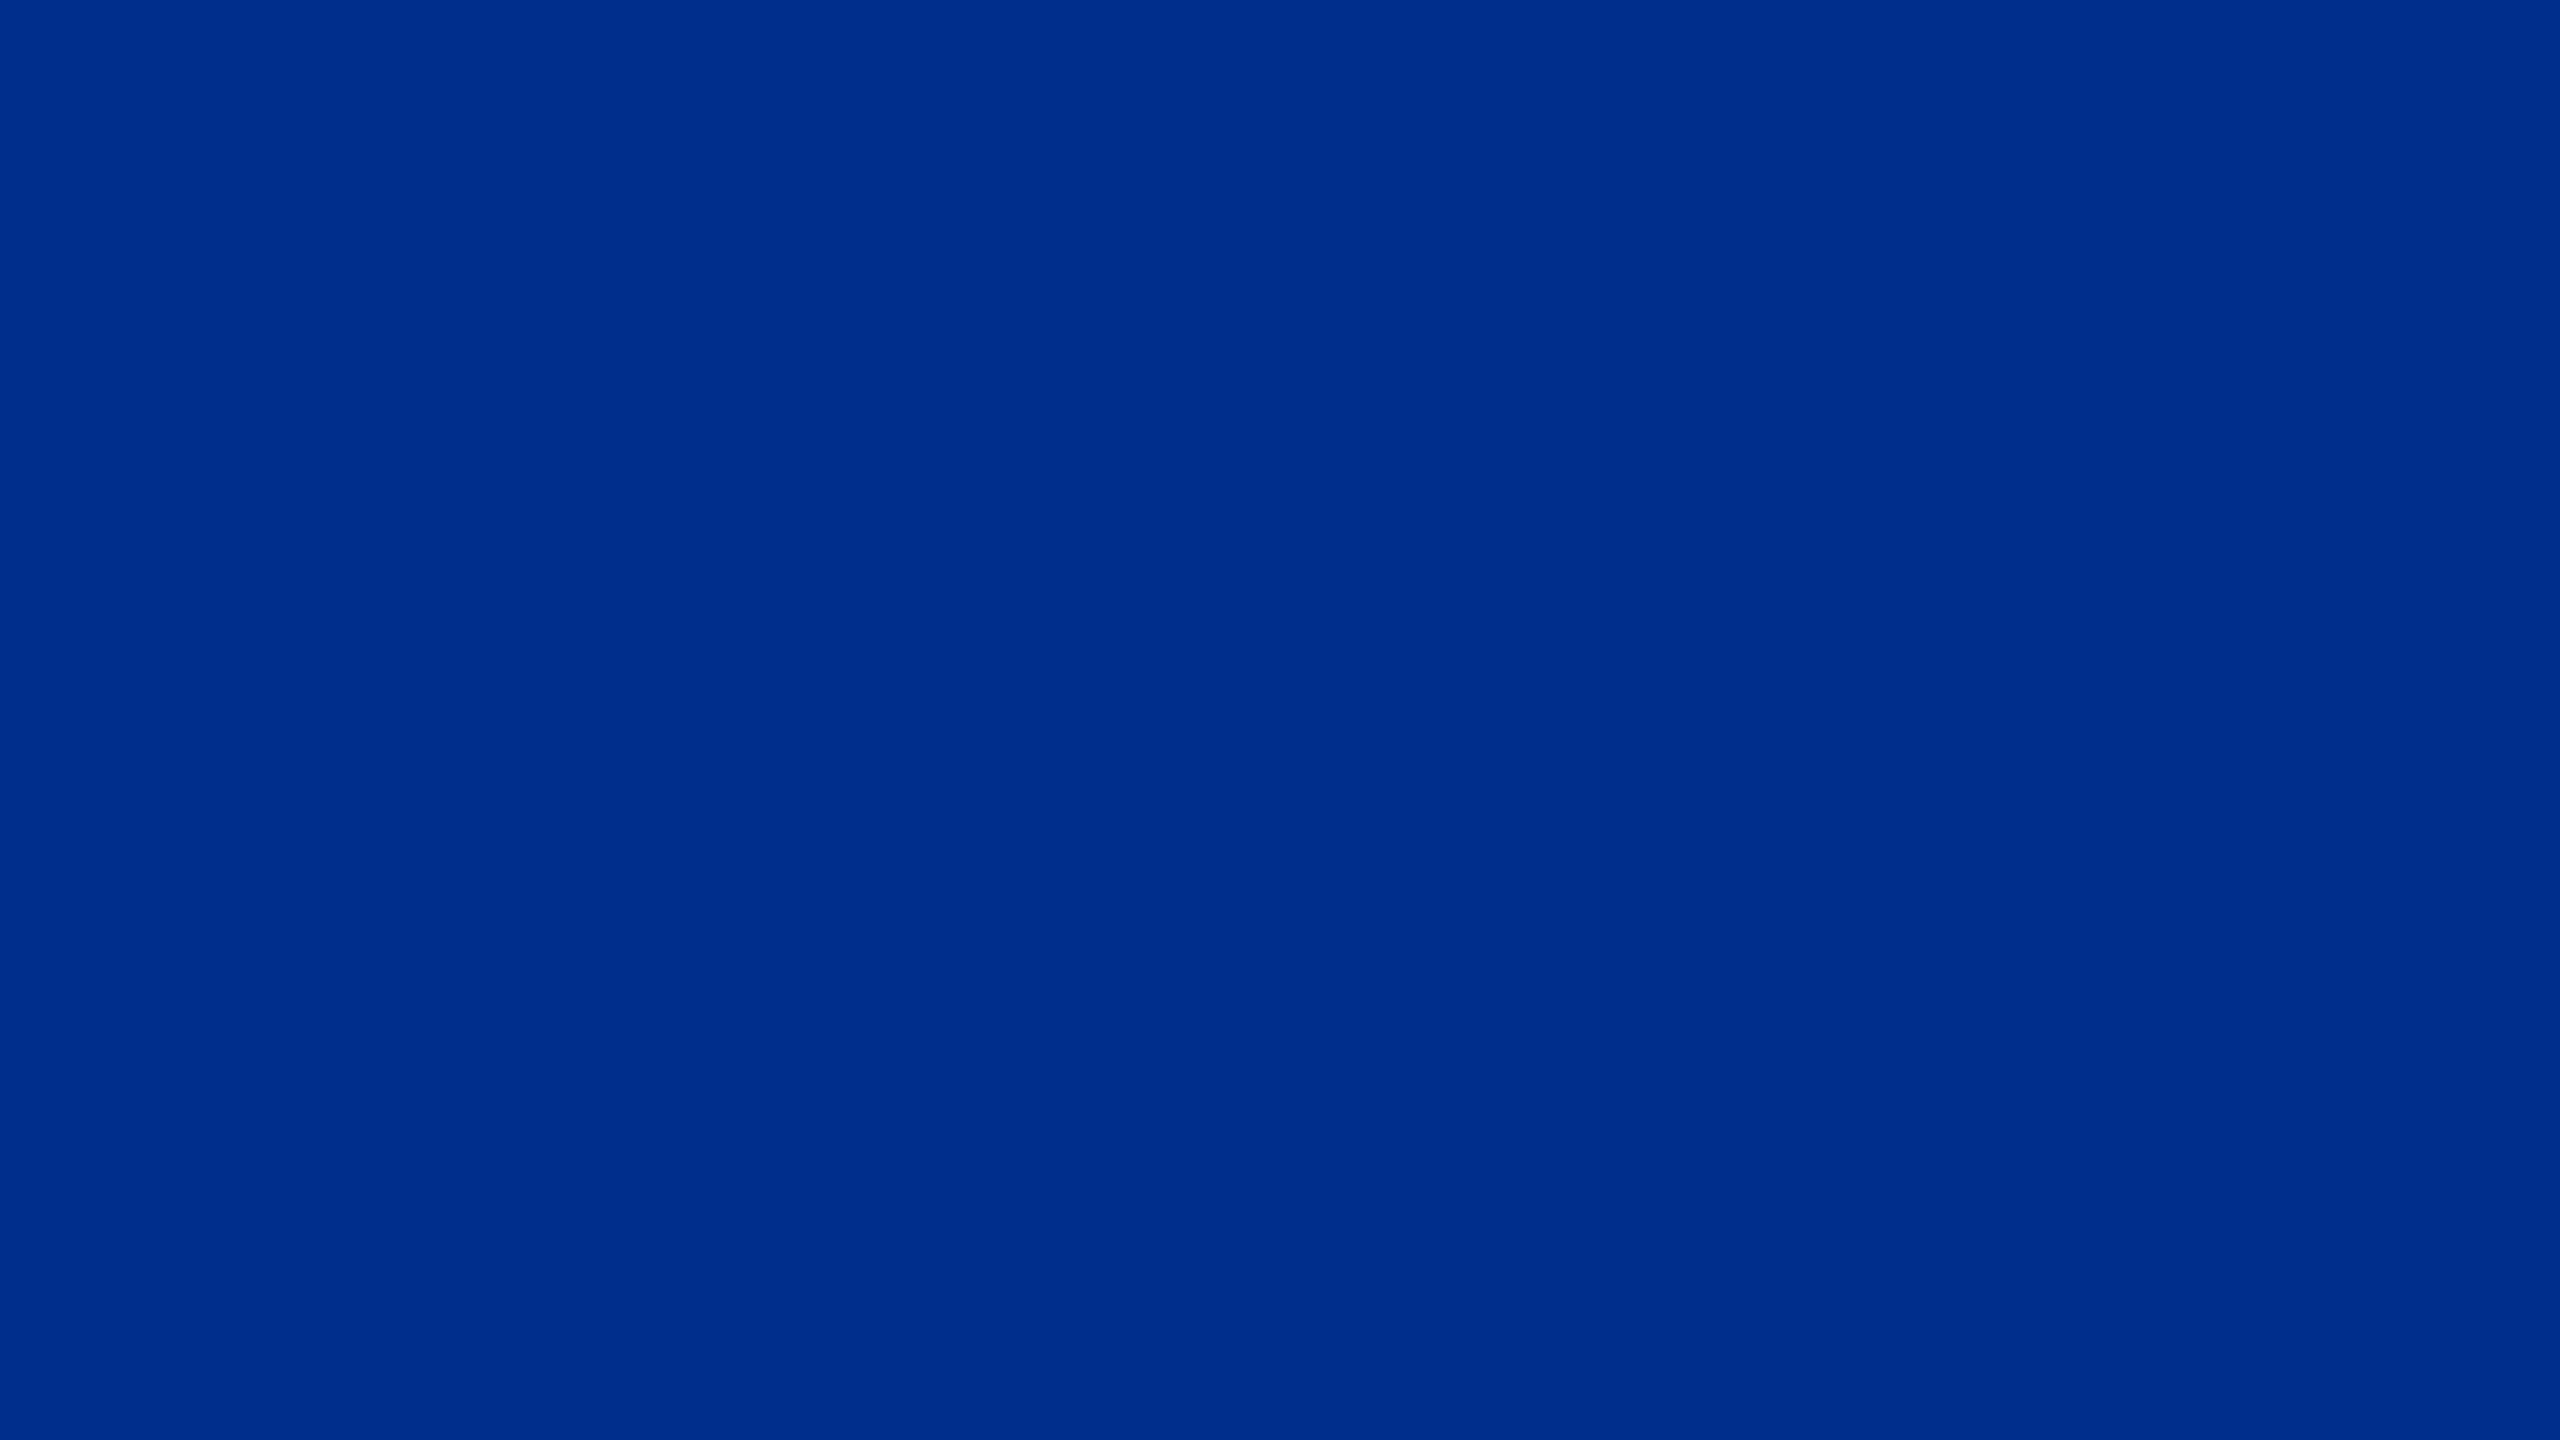 2560x1440 Air Force Dark Blue Solid Color Background